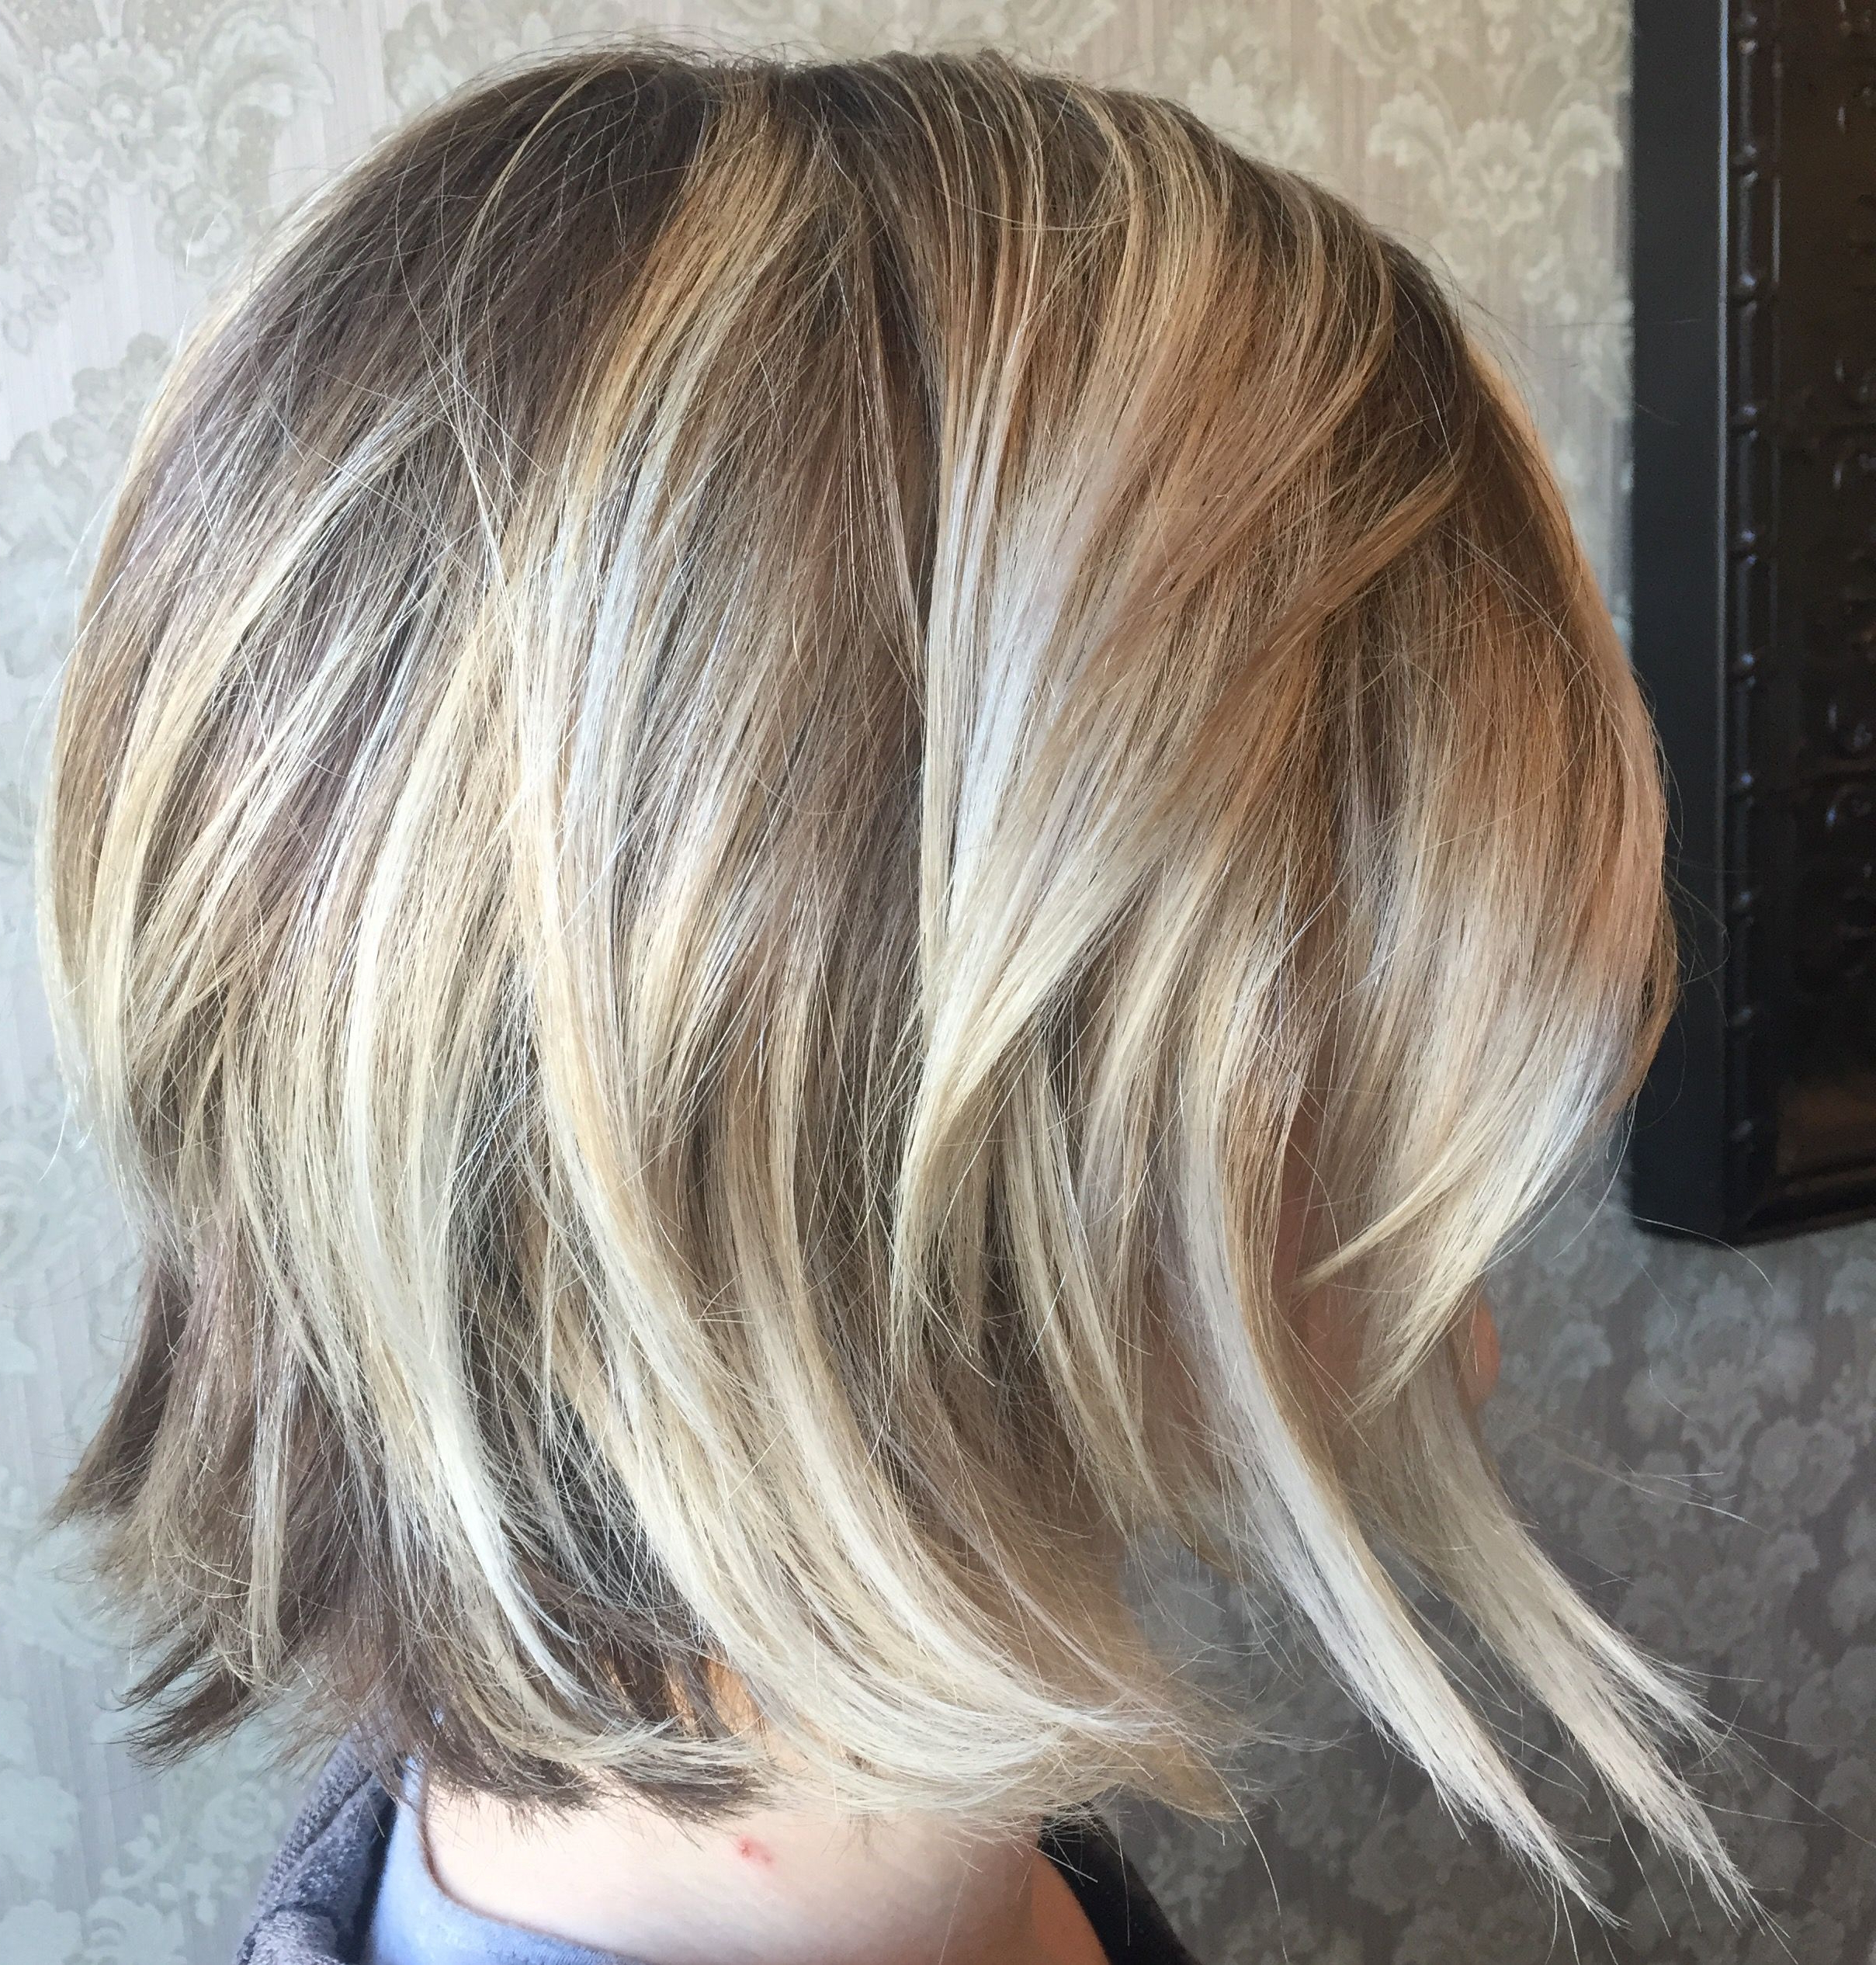 Blonde On Blonde Balayage Highlights, Angled Bob Haircut For Cool Toned Angled Bob Hairstyles (View 18 of 20)